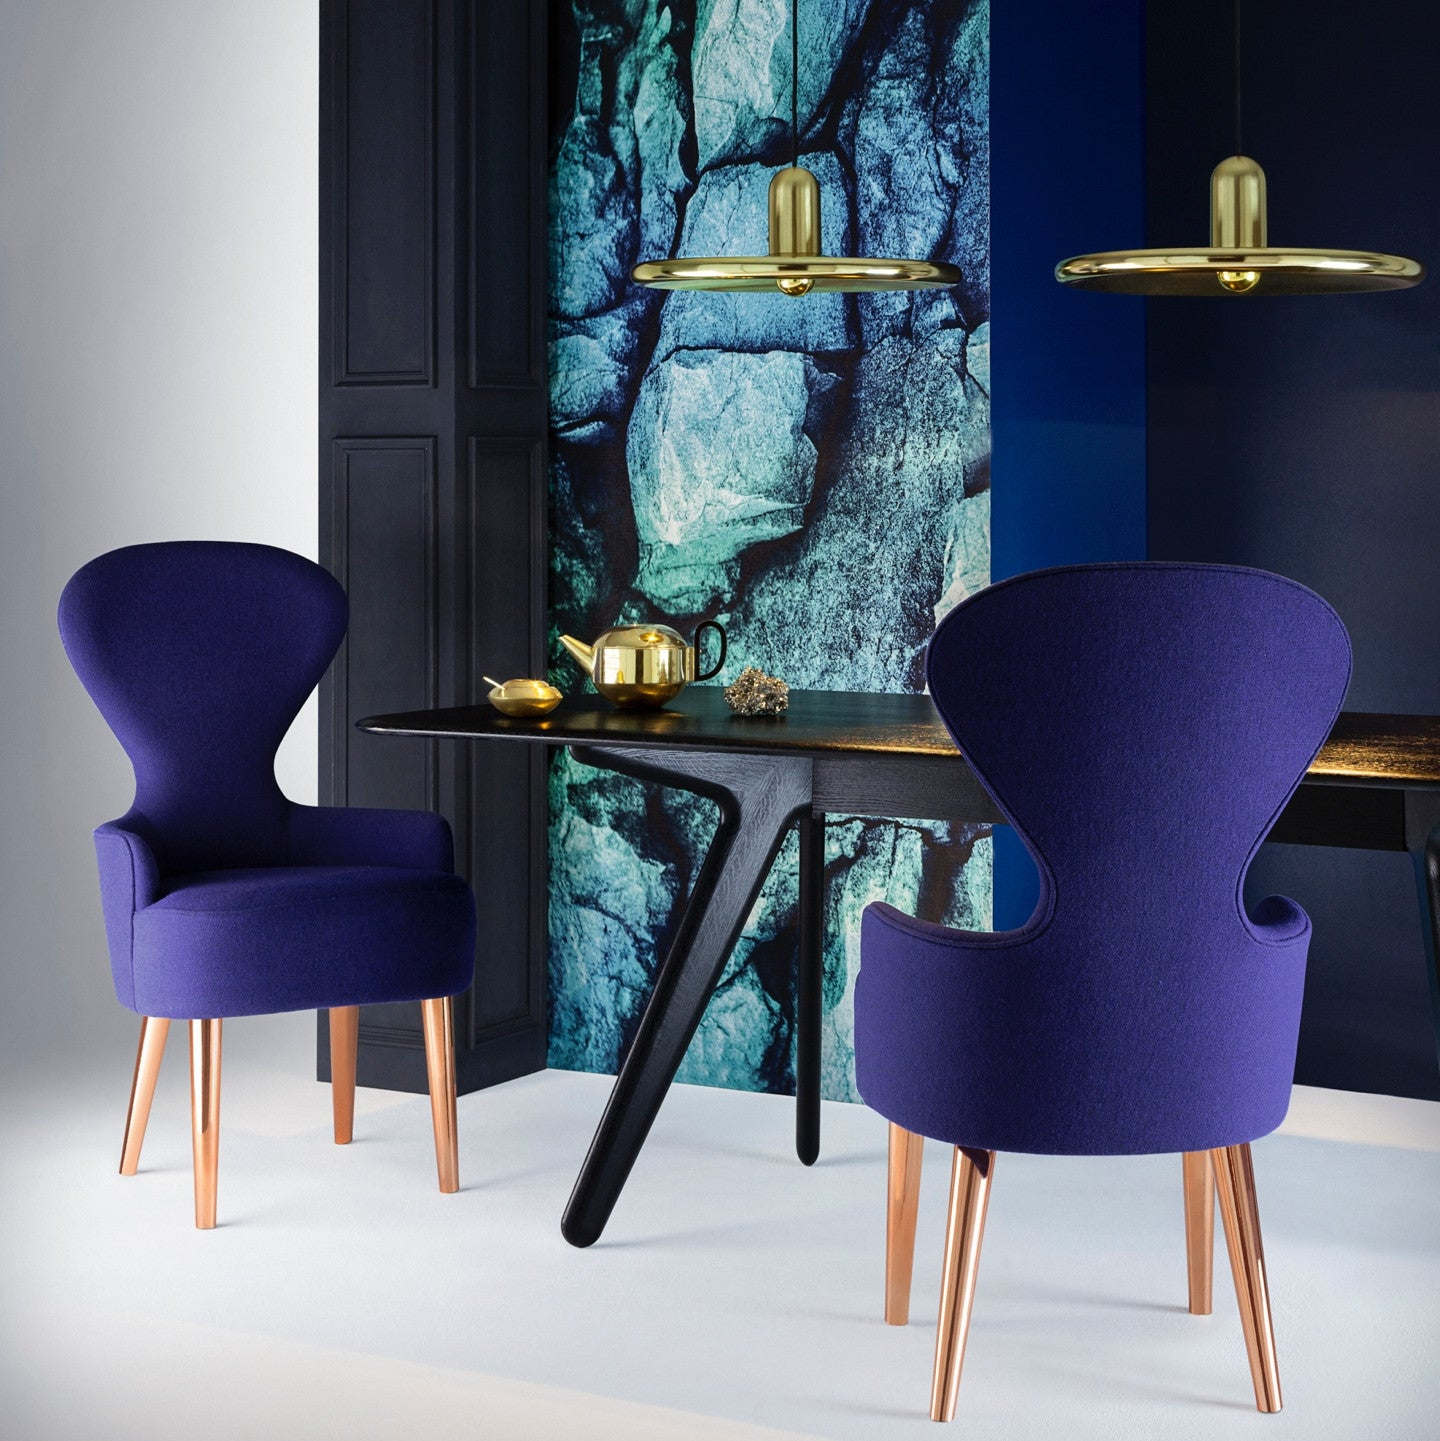 tom dixon chair price scoop chair low copper chairs tom dixon